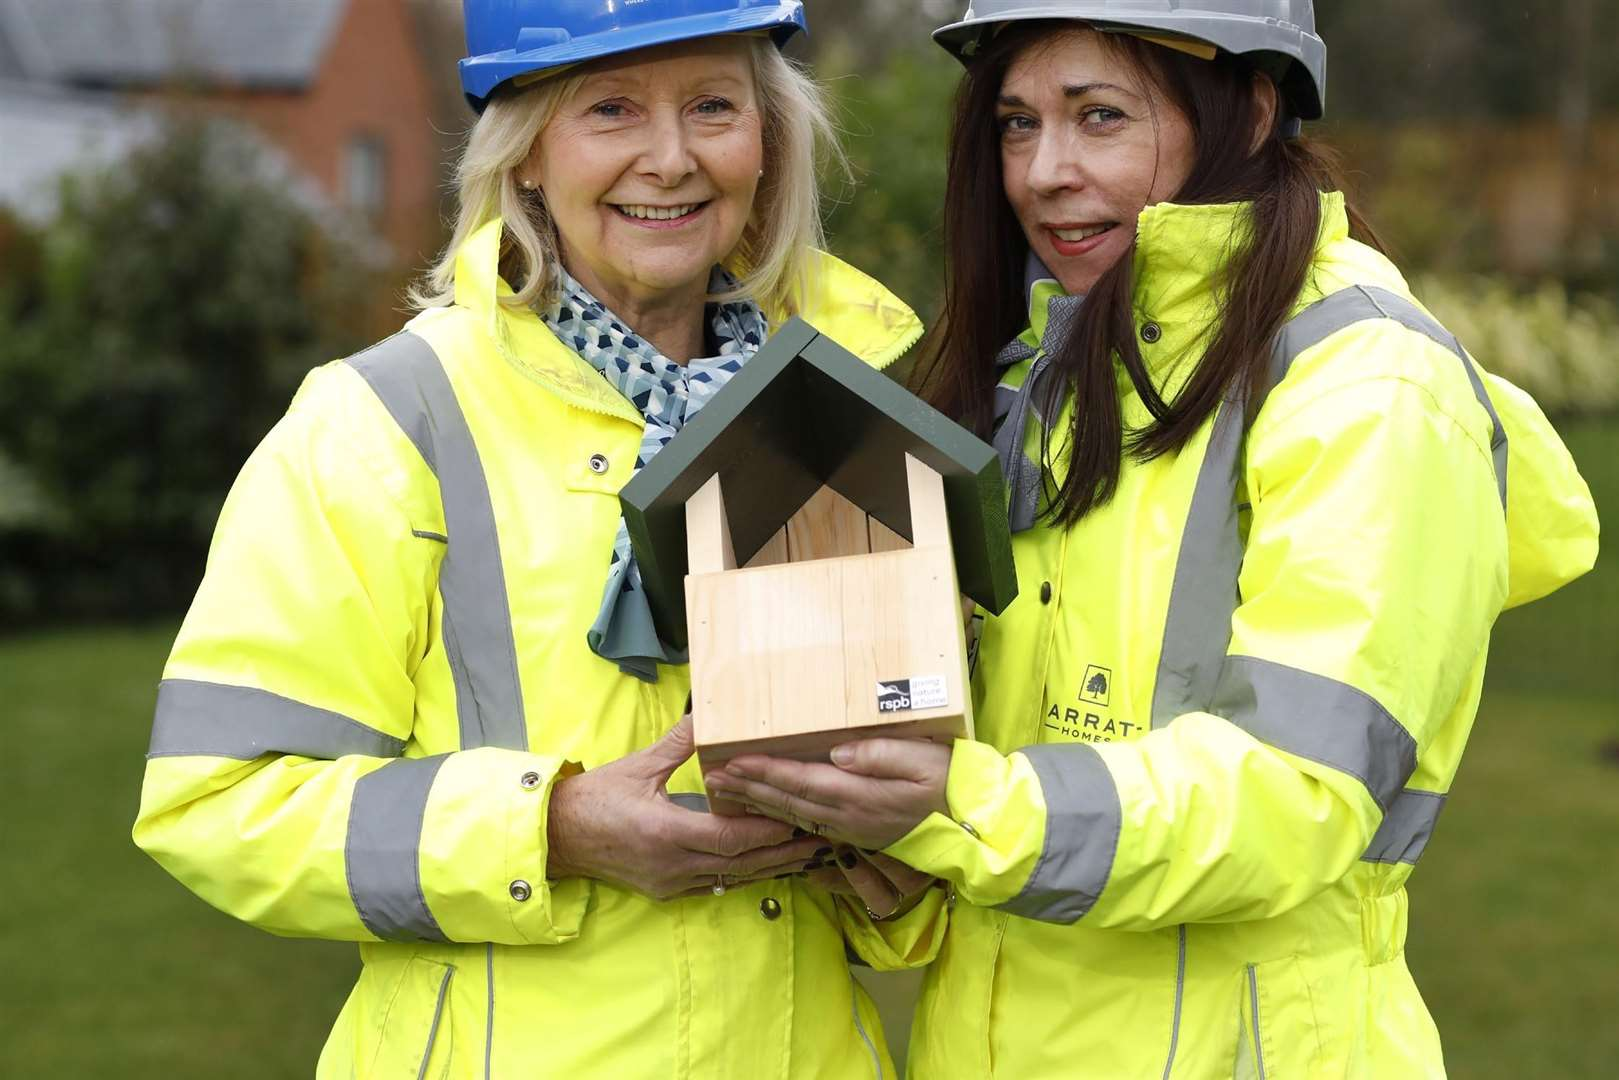 Barratt staff with one of the nest boxes fitted (1393378)